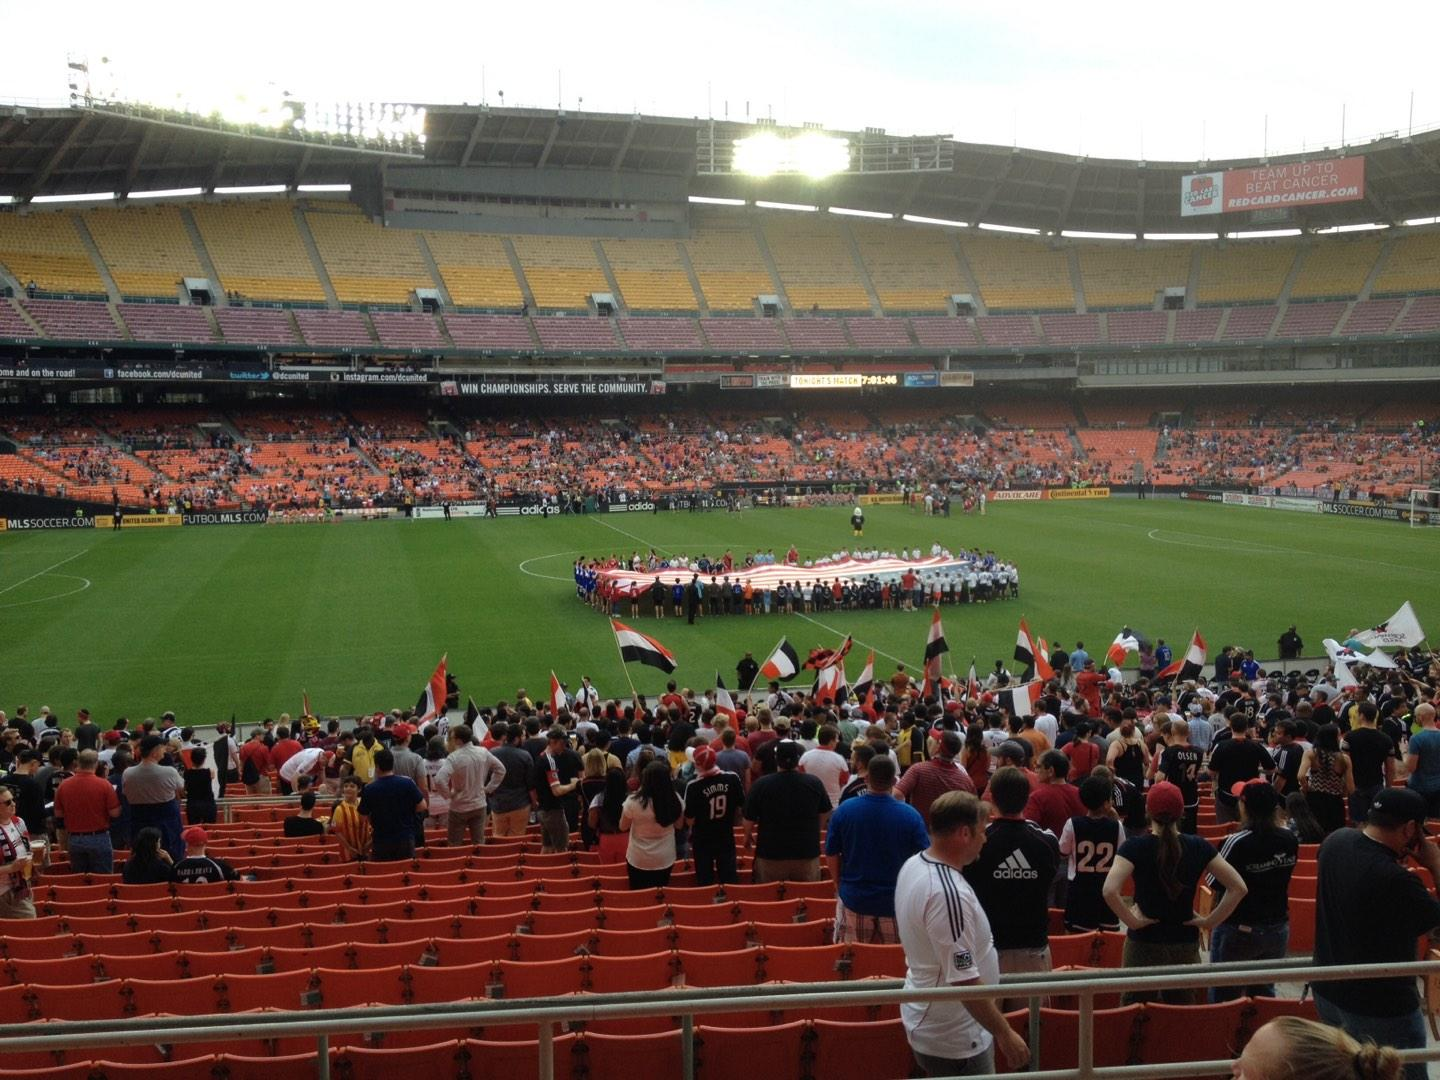 RFK Stadium Section 335 Row 6 Seat 11